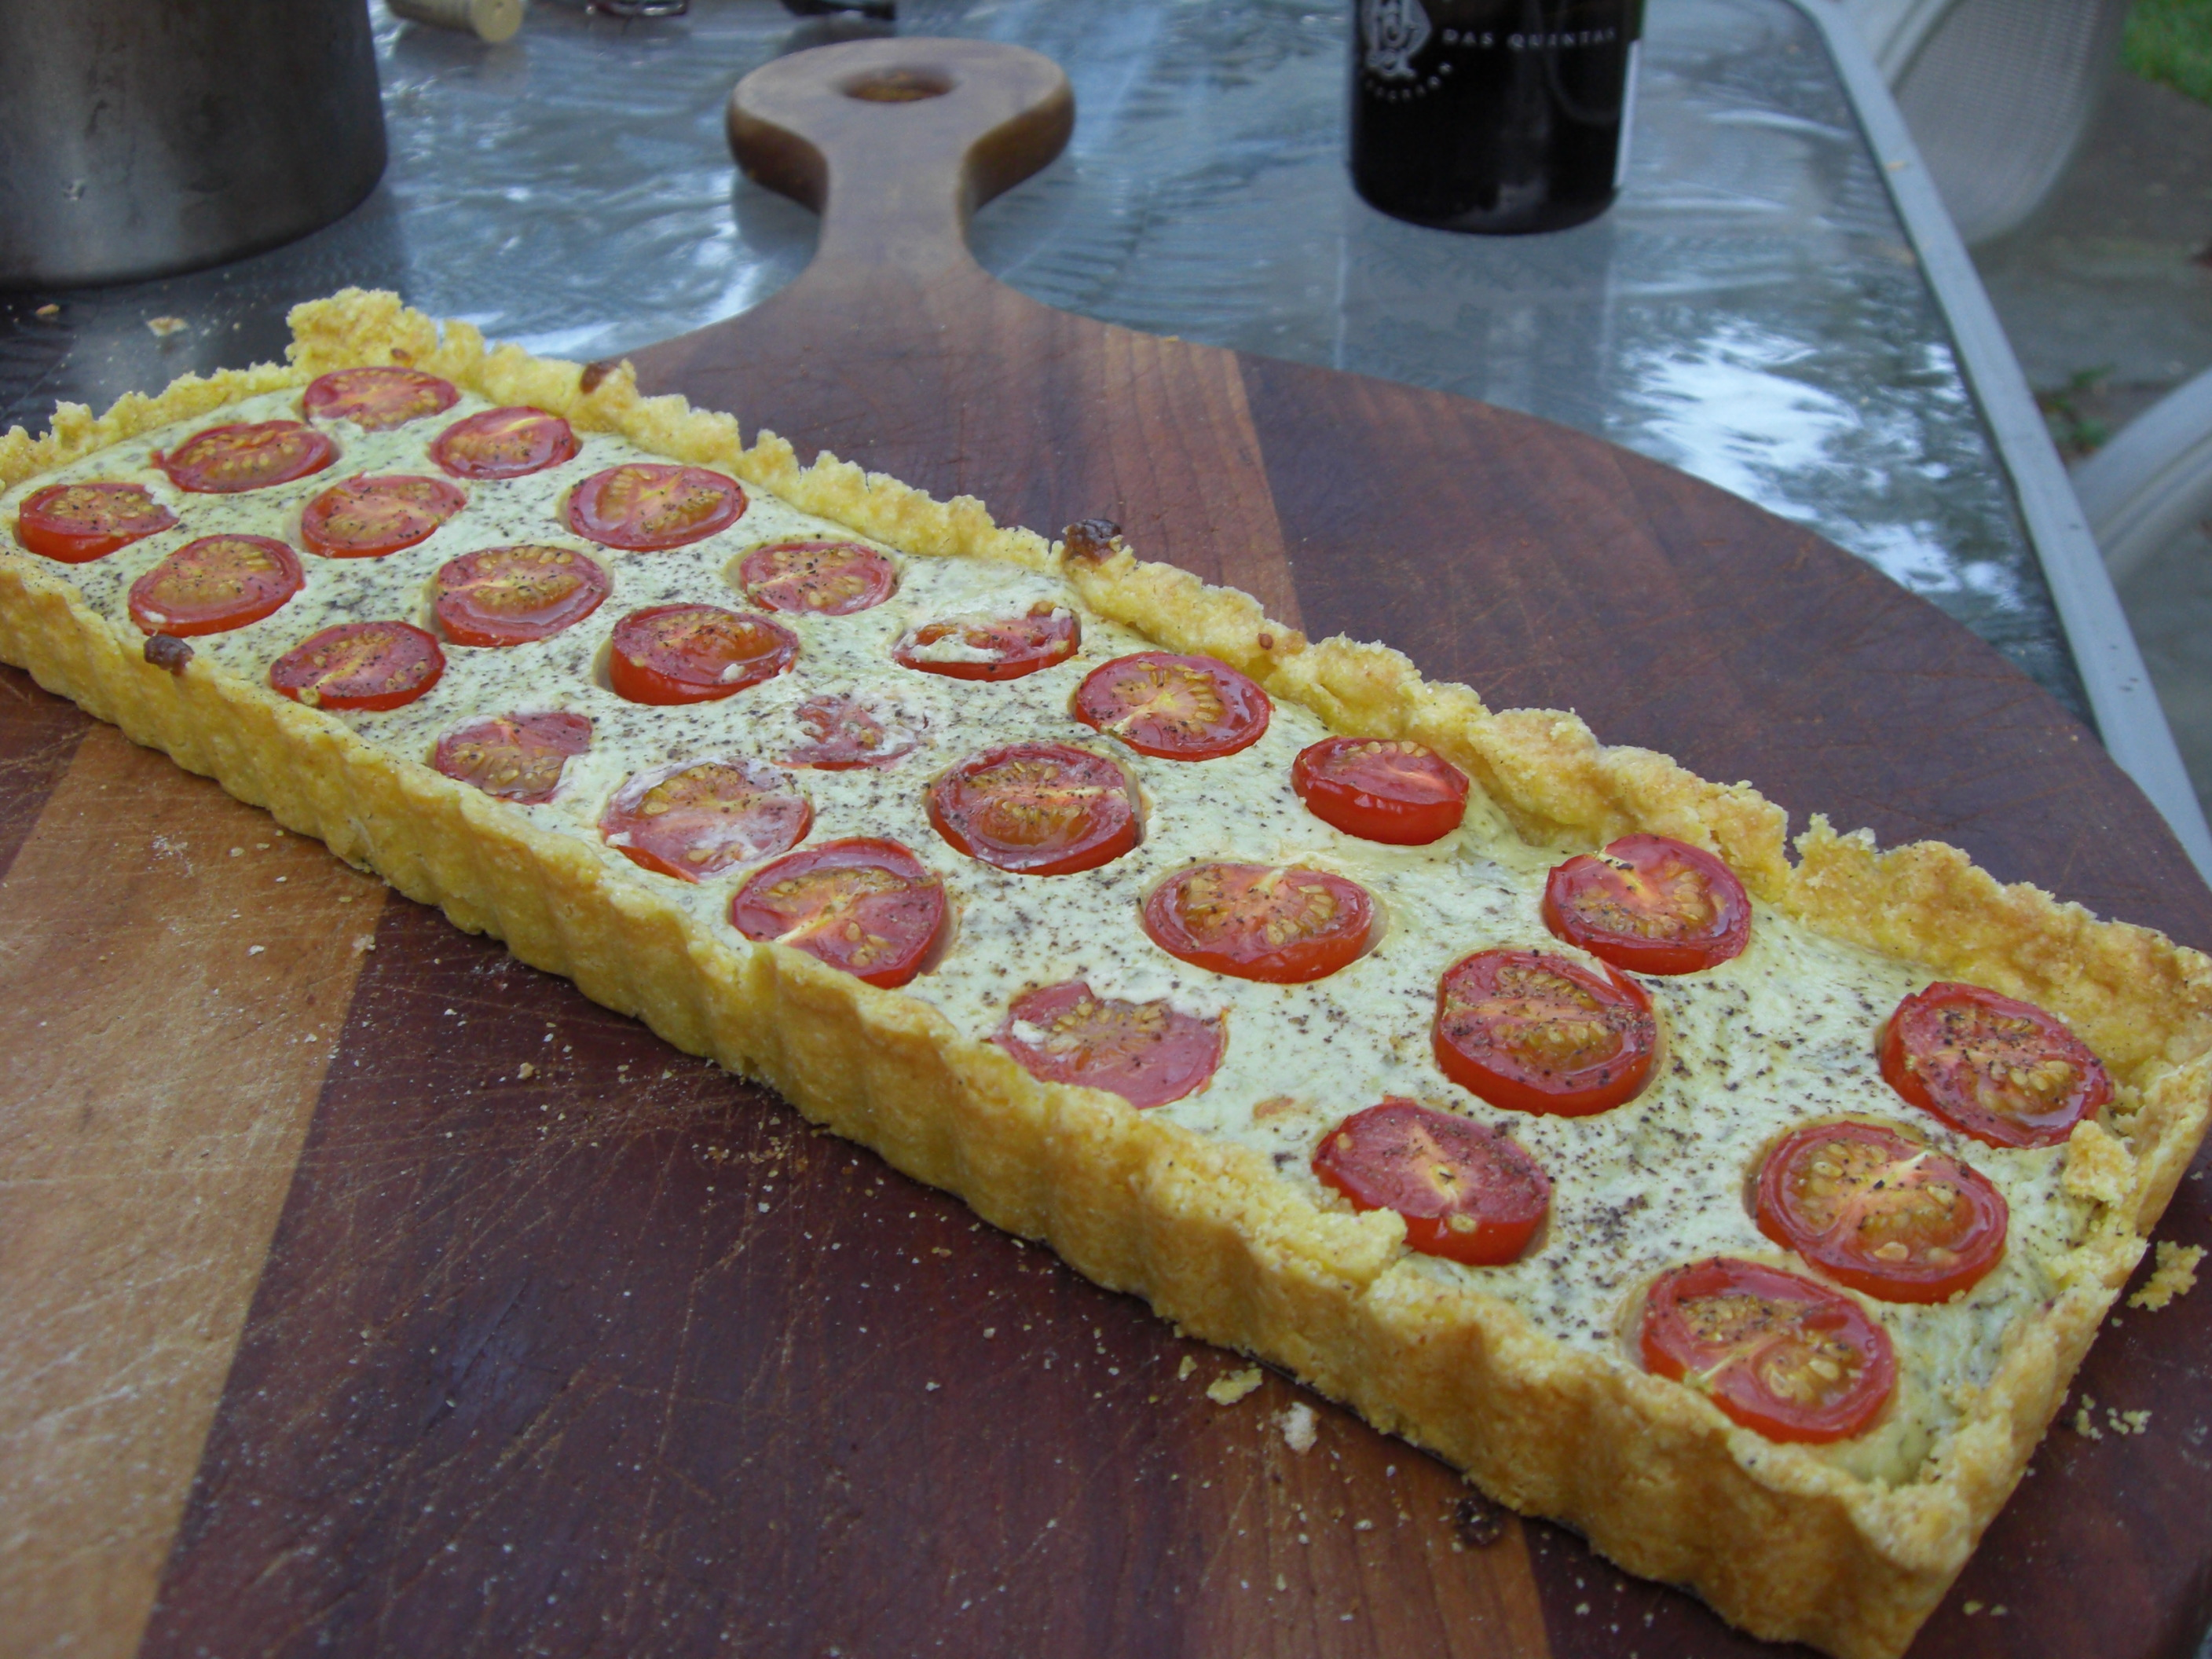 GOAT CHEESE AND TOMATO TART IN A CORNMEAL CRUST